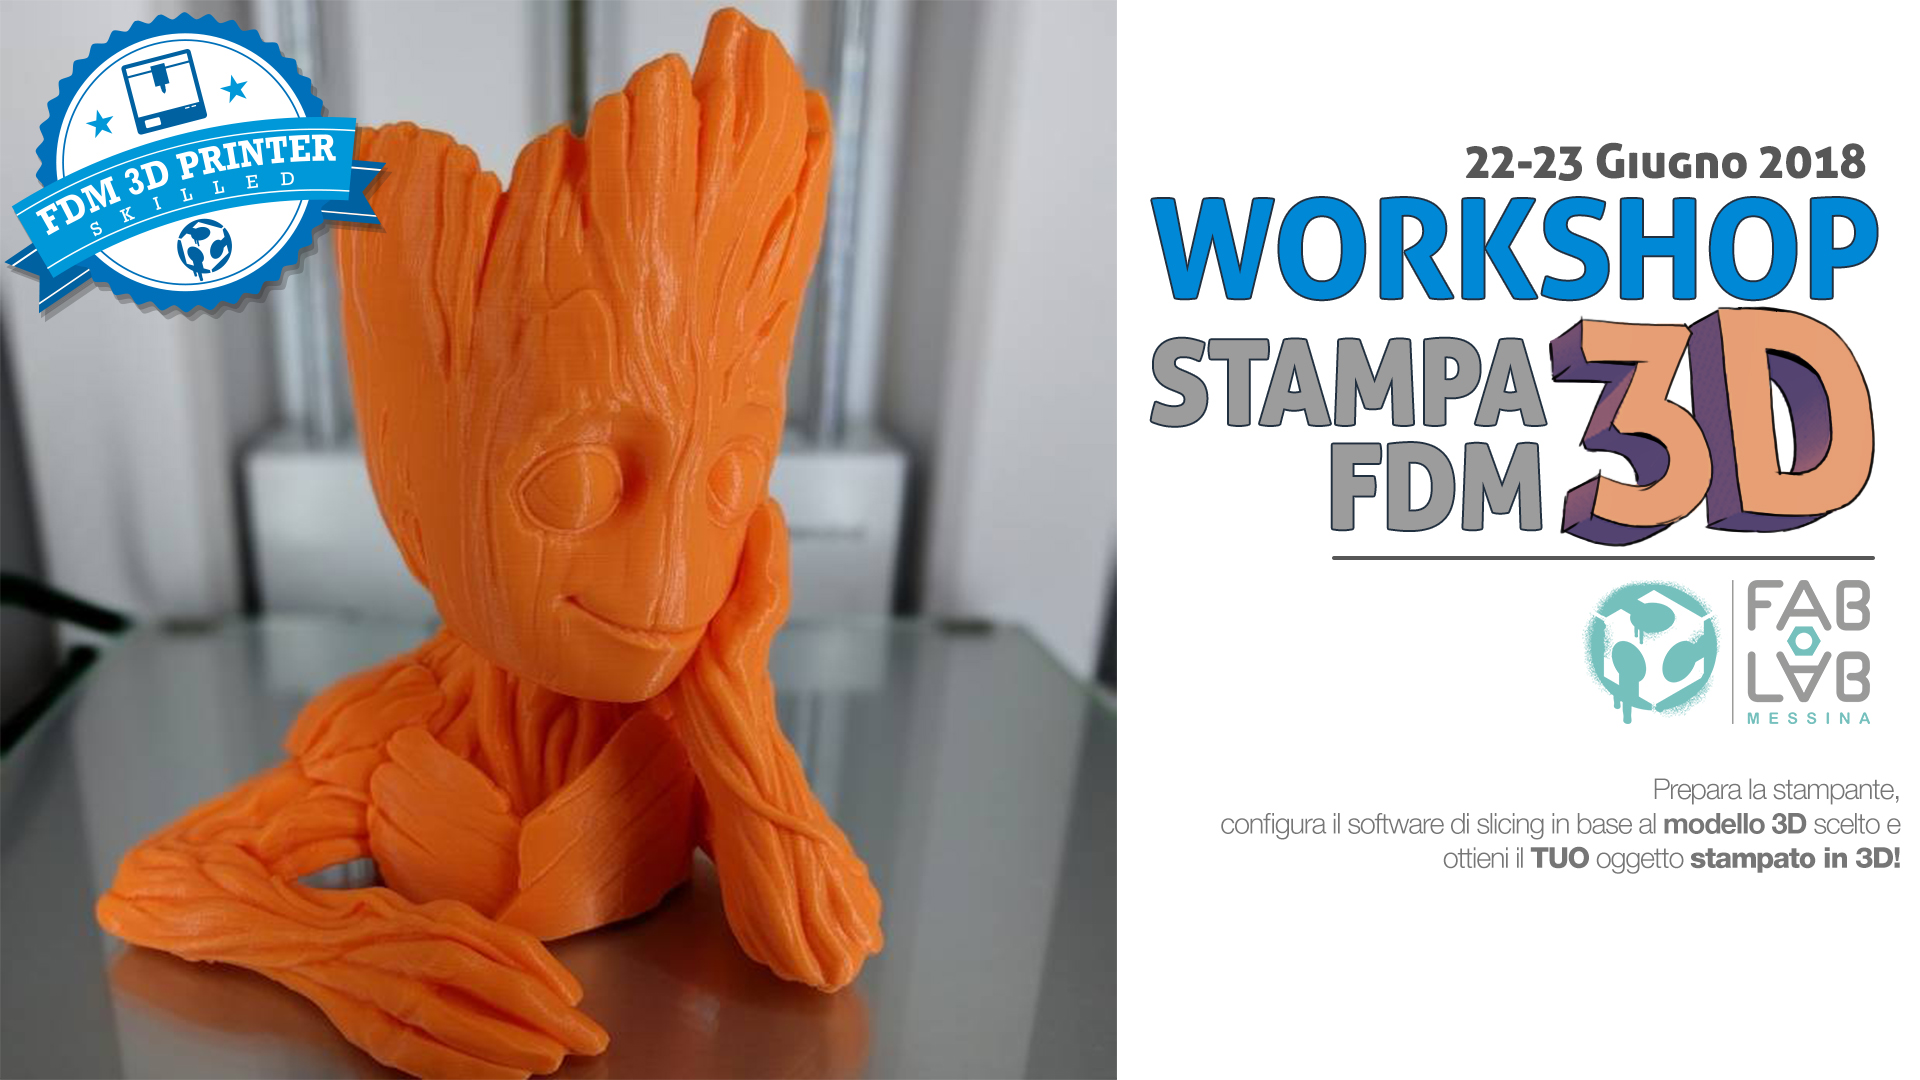 Workshop di Stampa 3D FDM